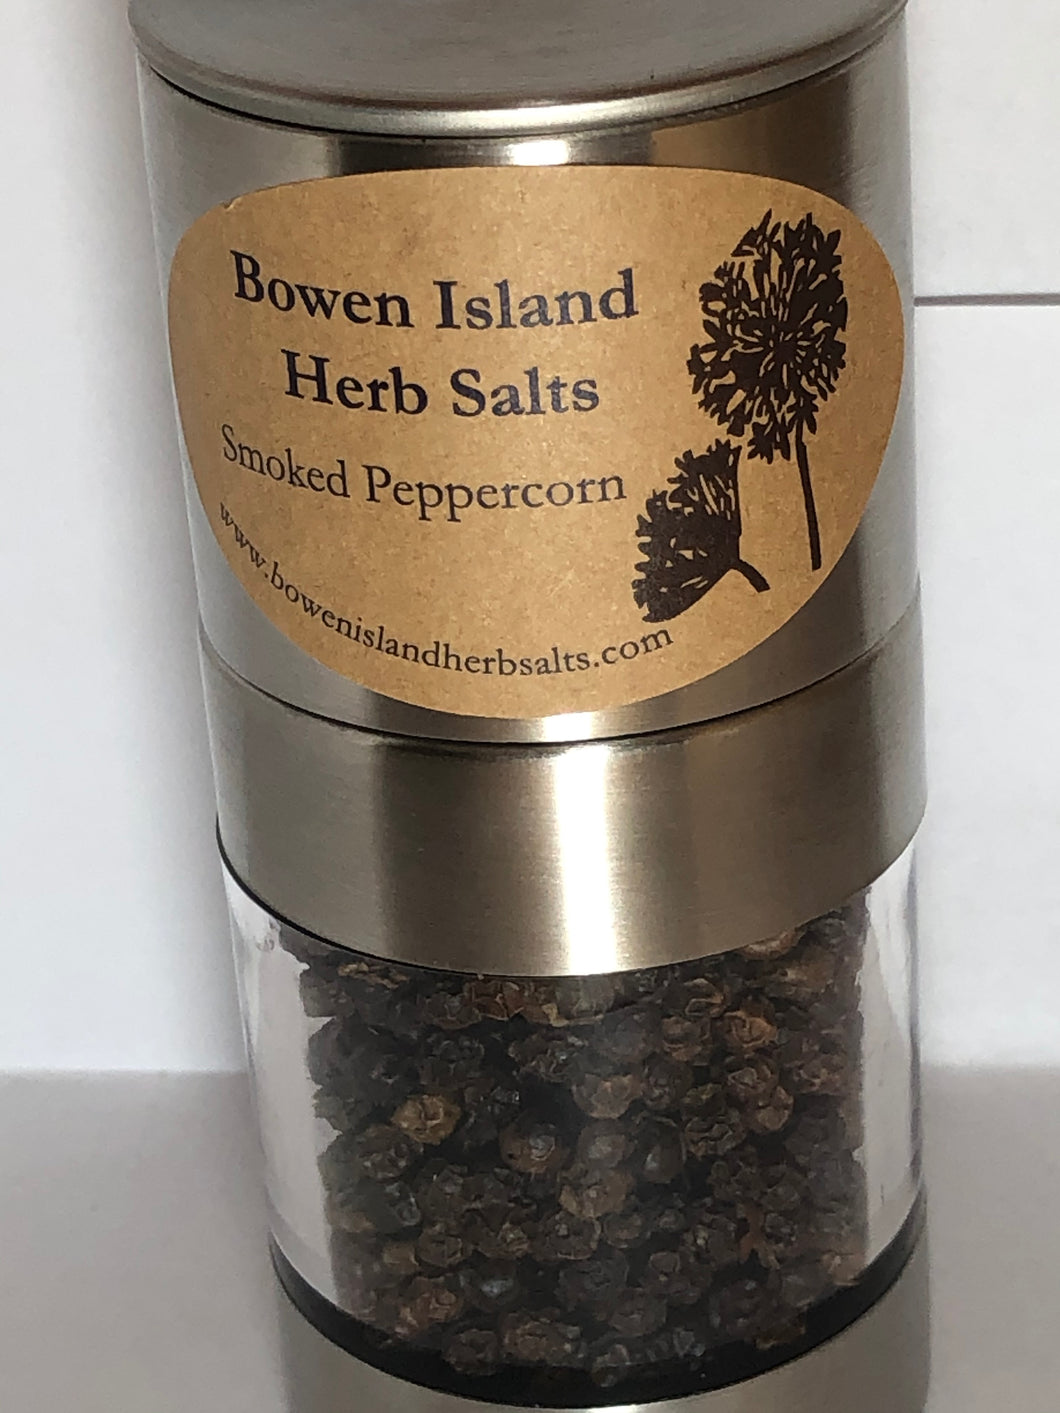 Smoked Black Peppercorns - Cedar Wood, Stainless Steel